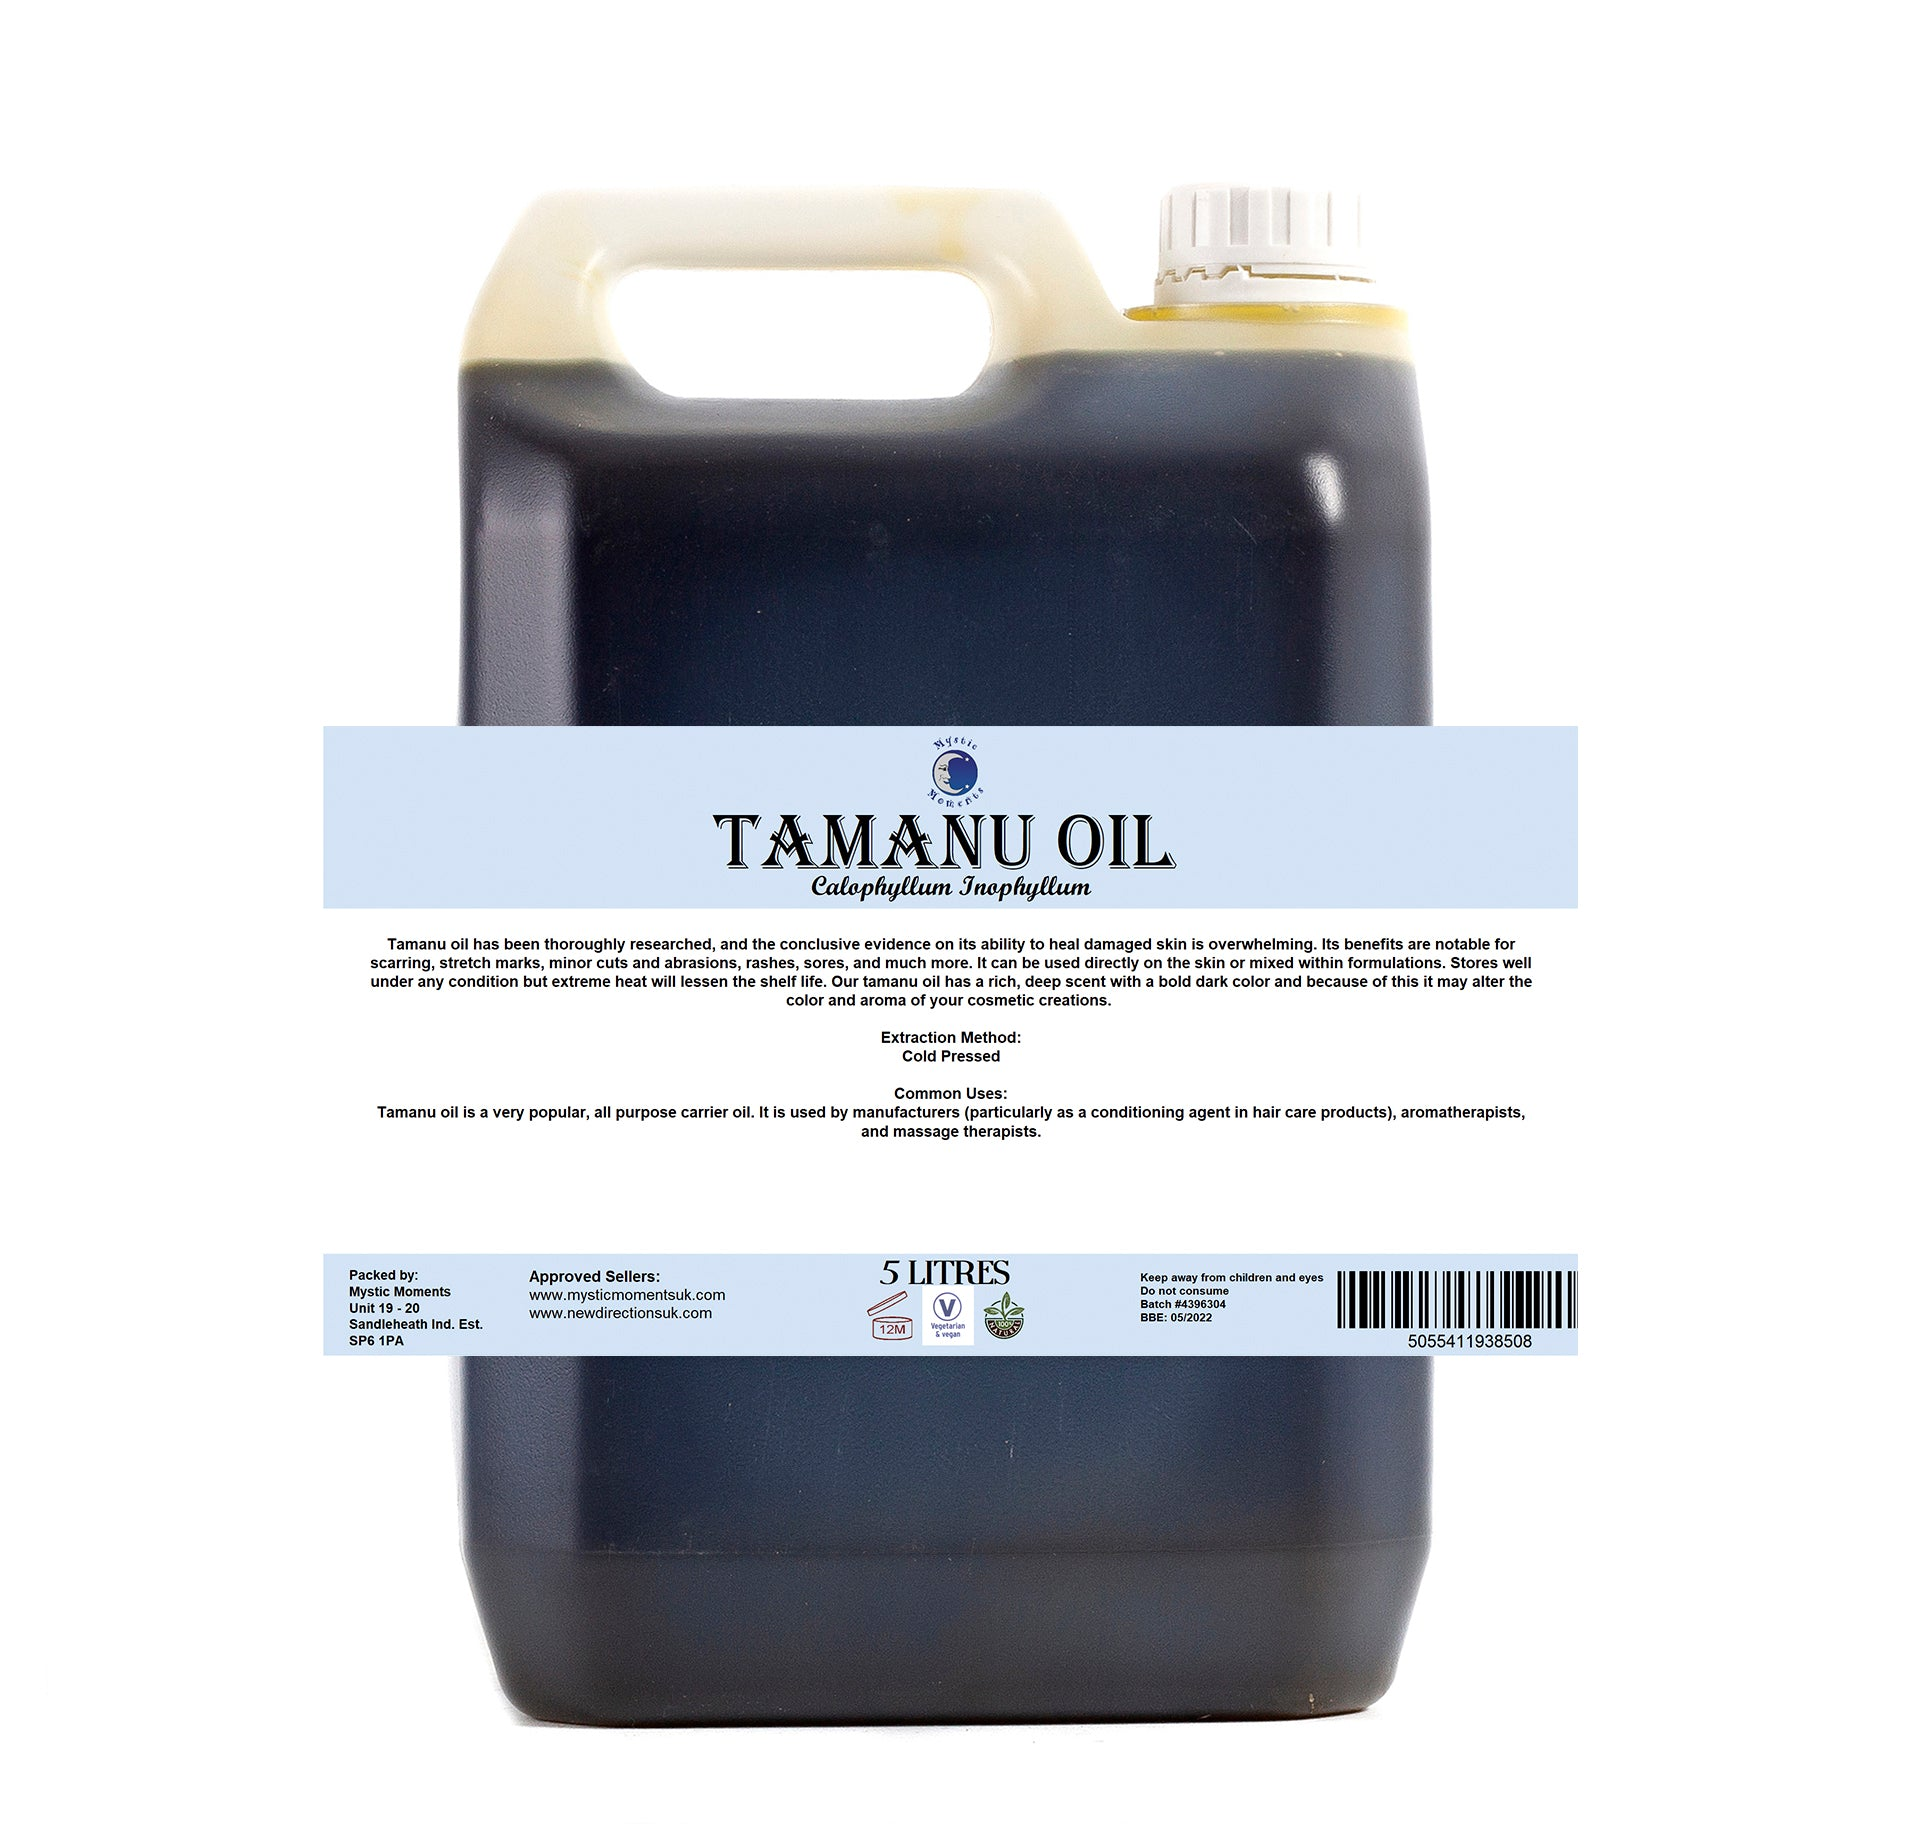 Tamanu Virgin Carrier Oil